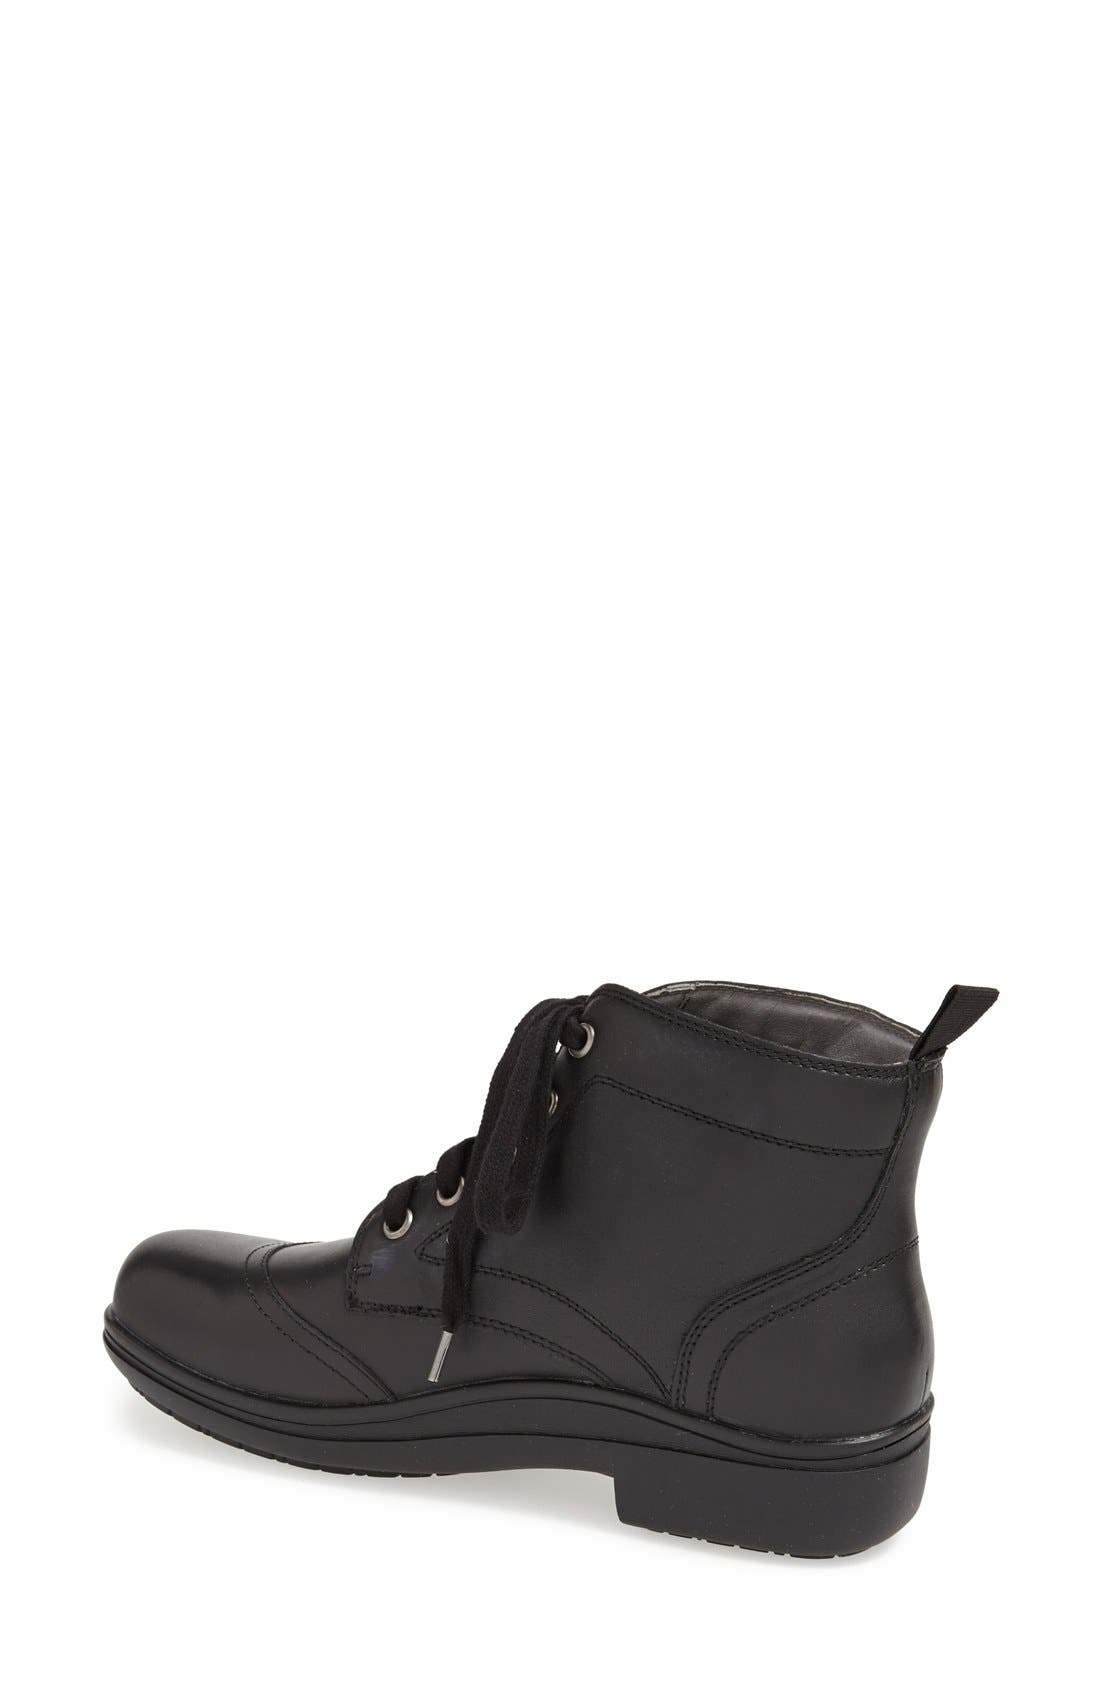 'Kylie' Leather Boot,                             Alternate thumbnail 4, color,                             001